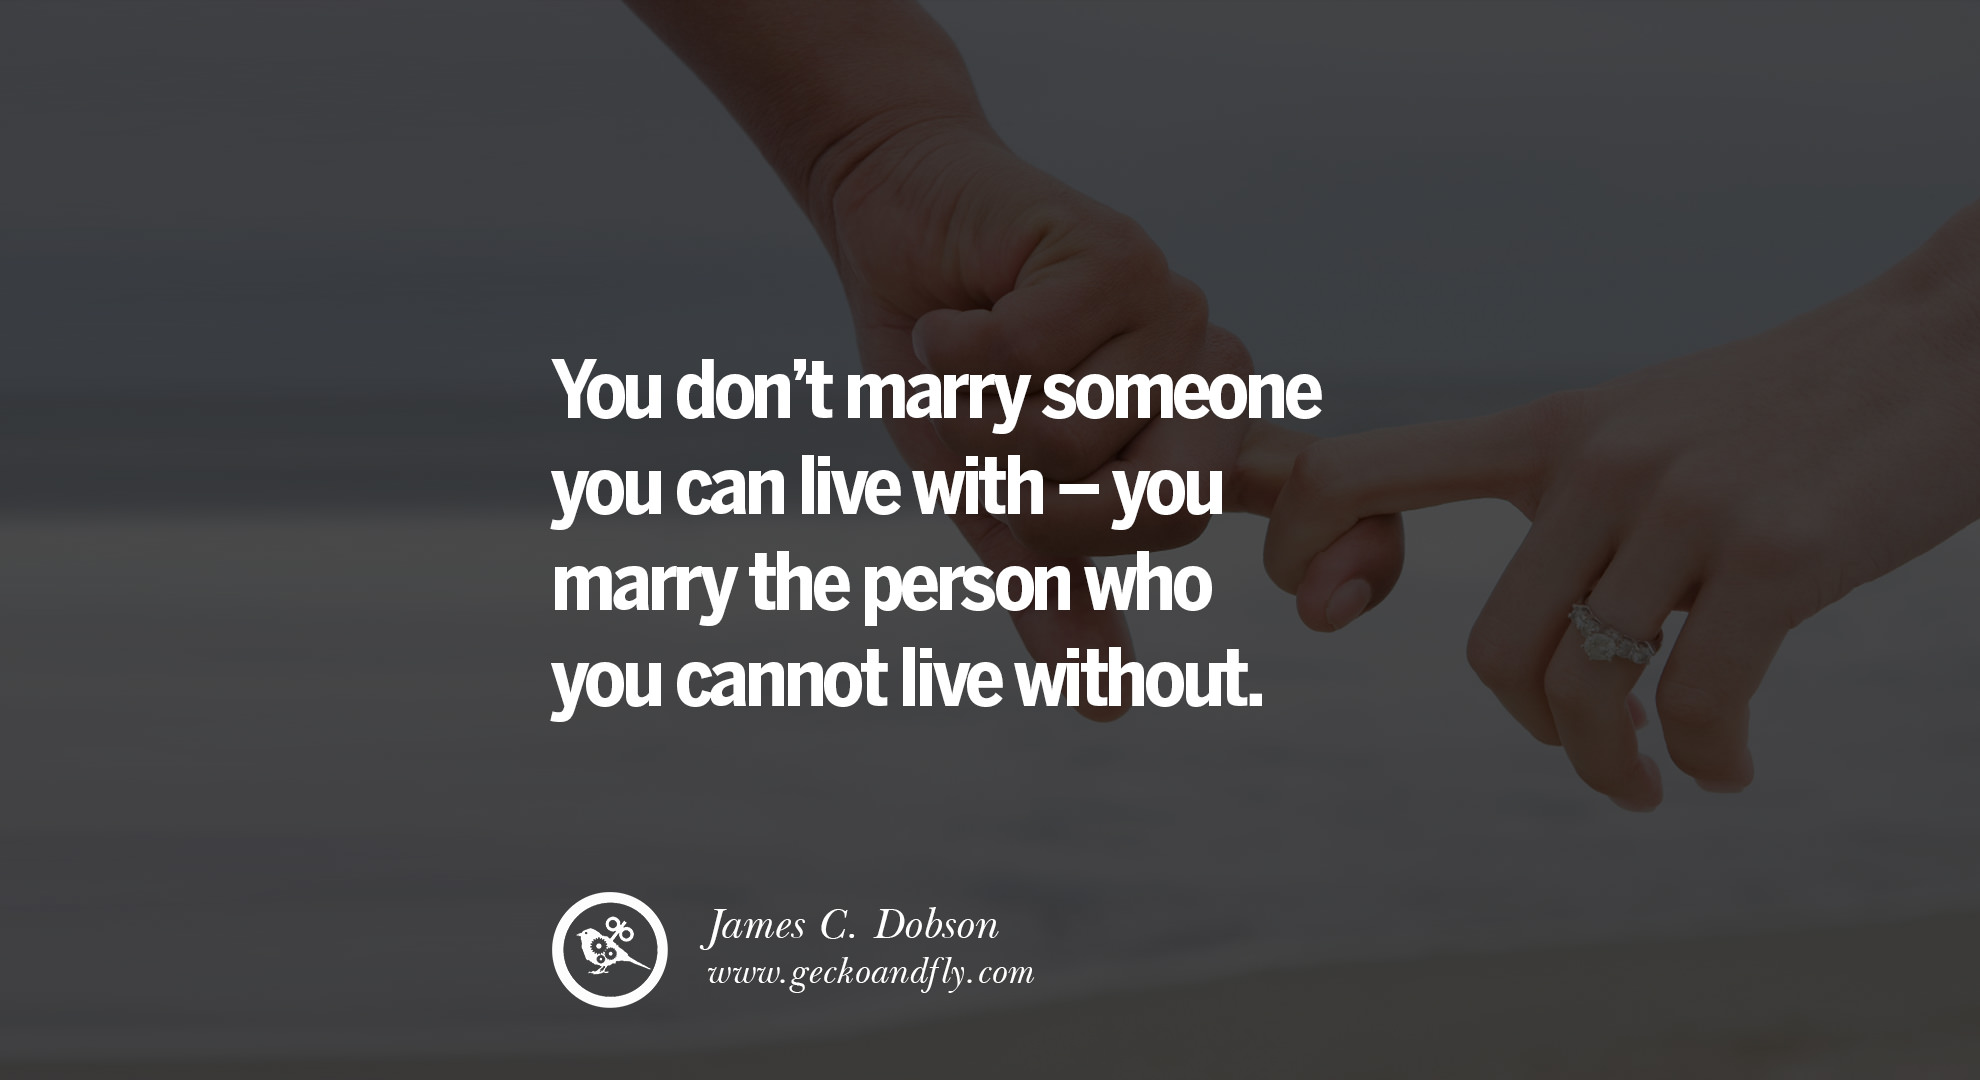 Quotes About Love You Donu0027t Marry Someone You Can Live With U2013 You Marry